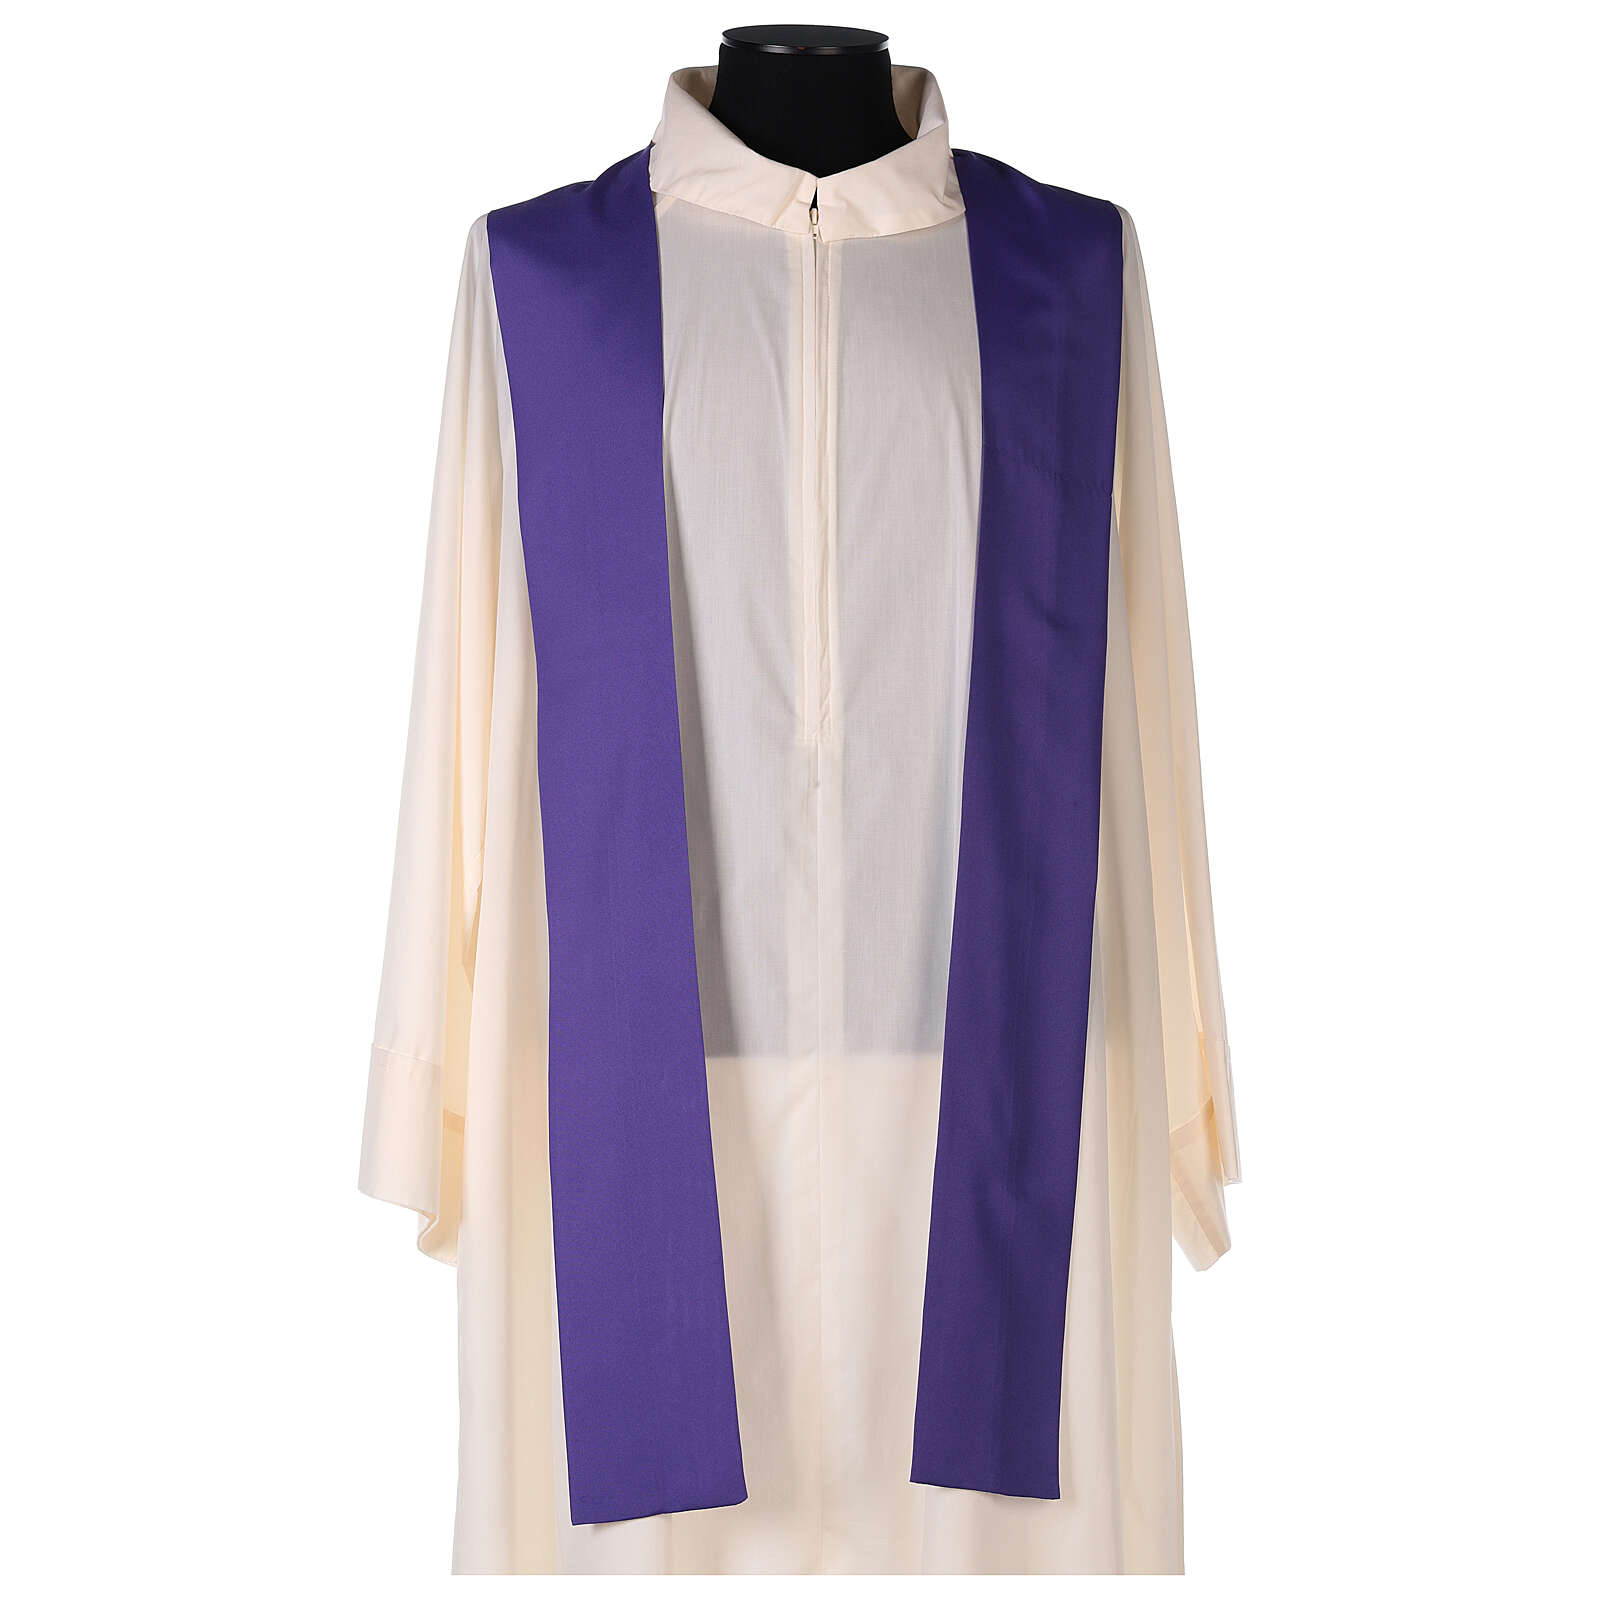 Set of 4 Chasubles 4 colors, cross SPECIAL PRICE 4